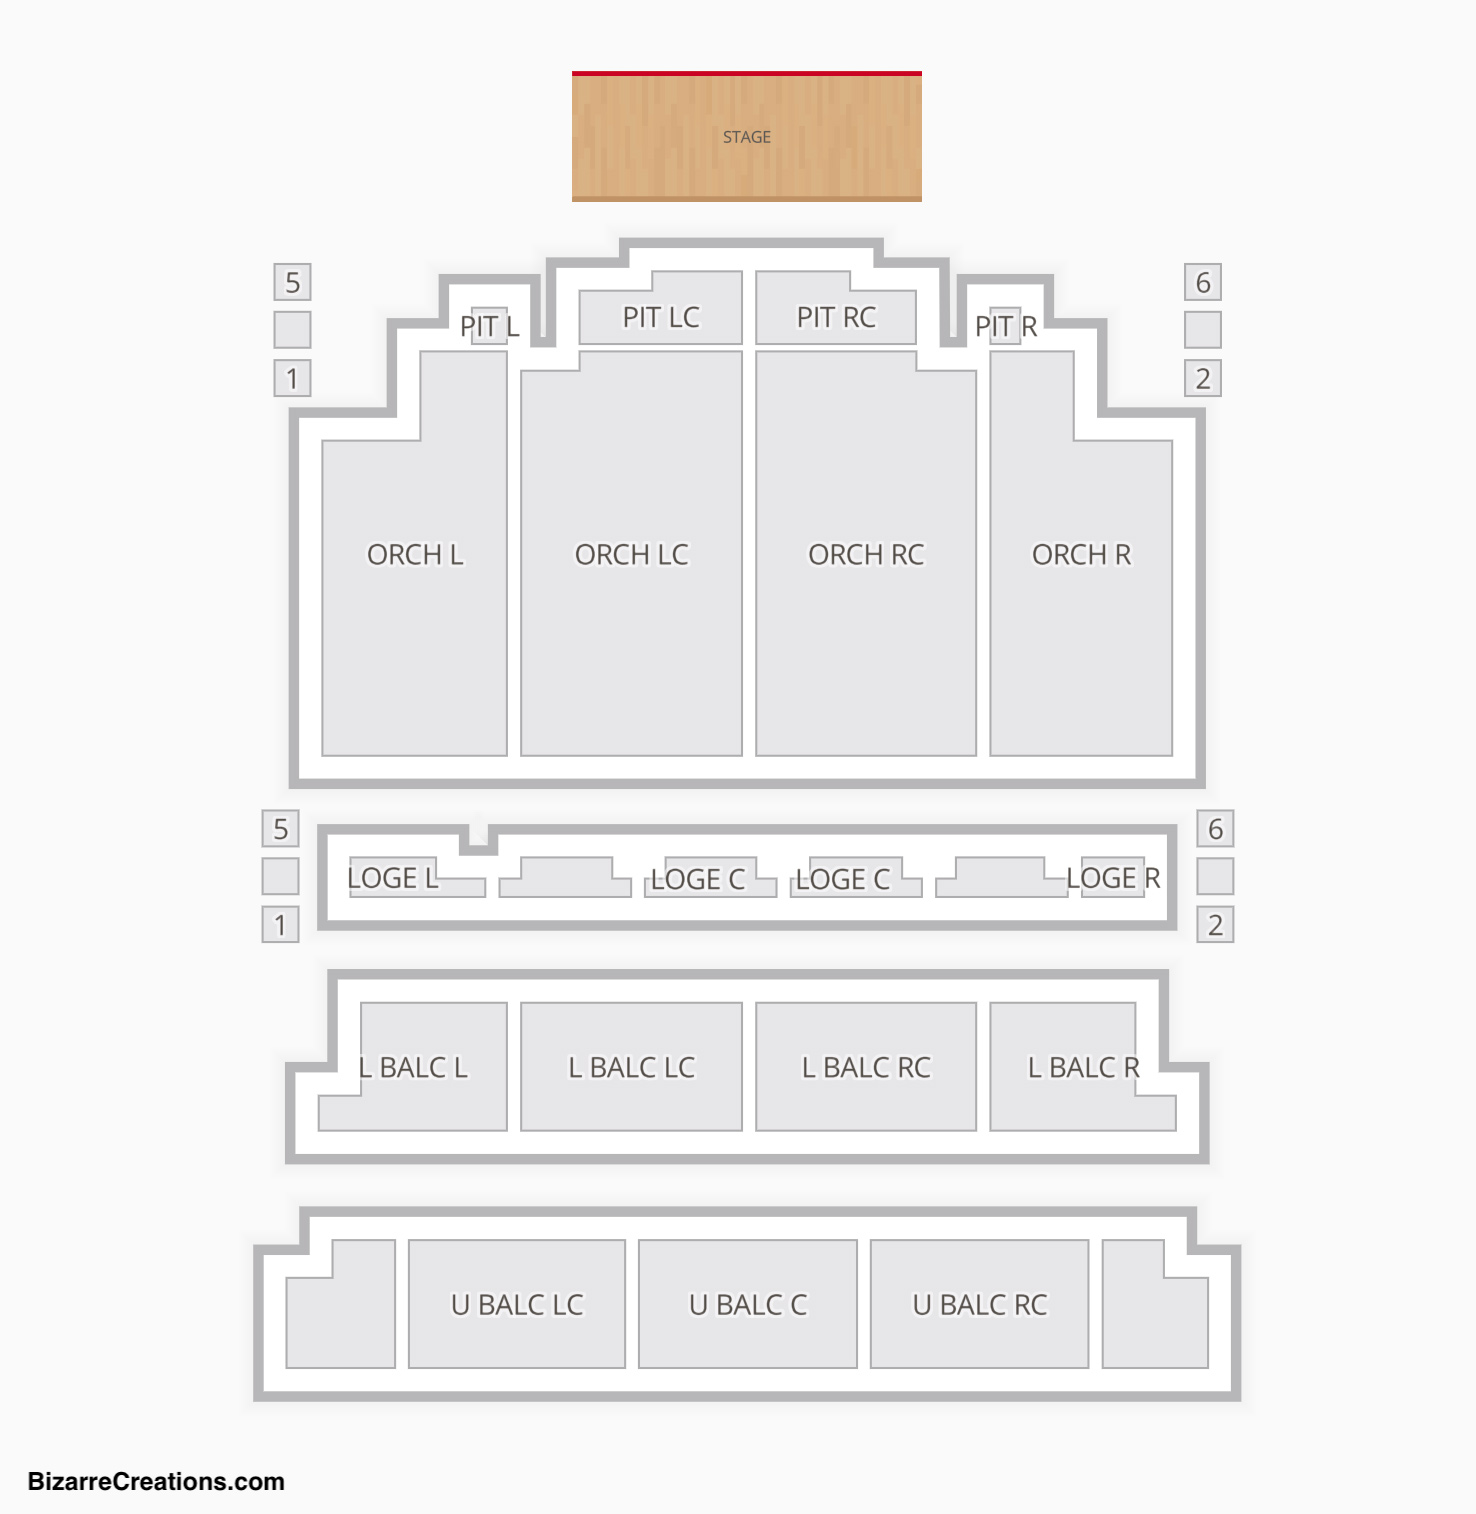 Tickets For Tivoli Theatre Aberdeen Tivoli Theatre Seating Plan Wallseat Co